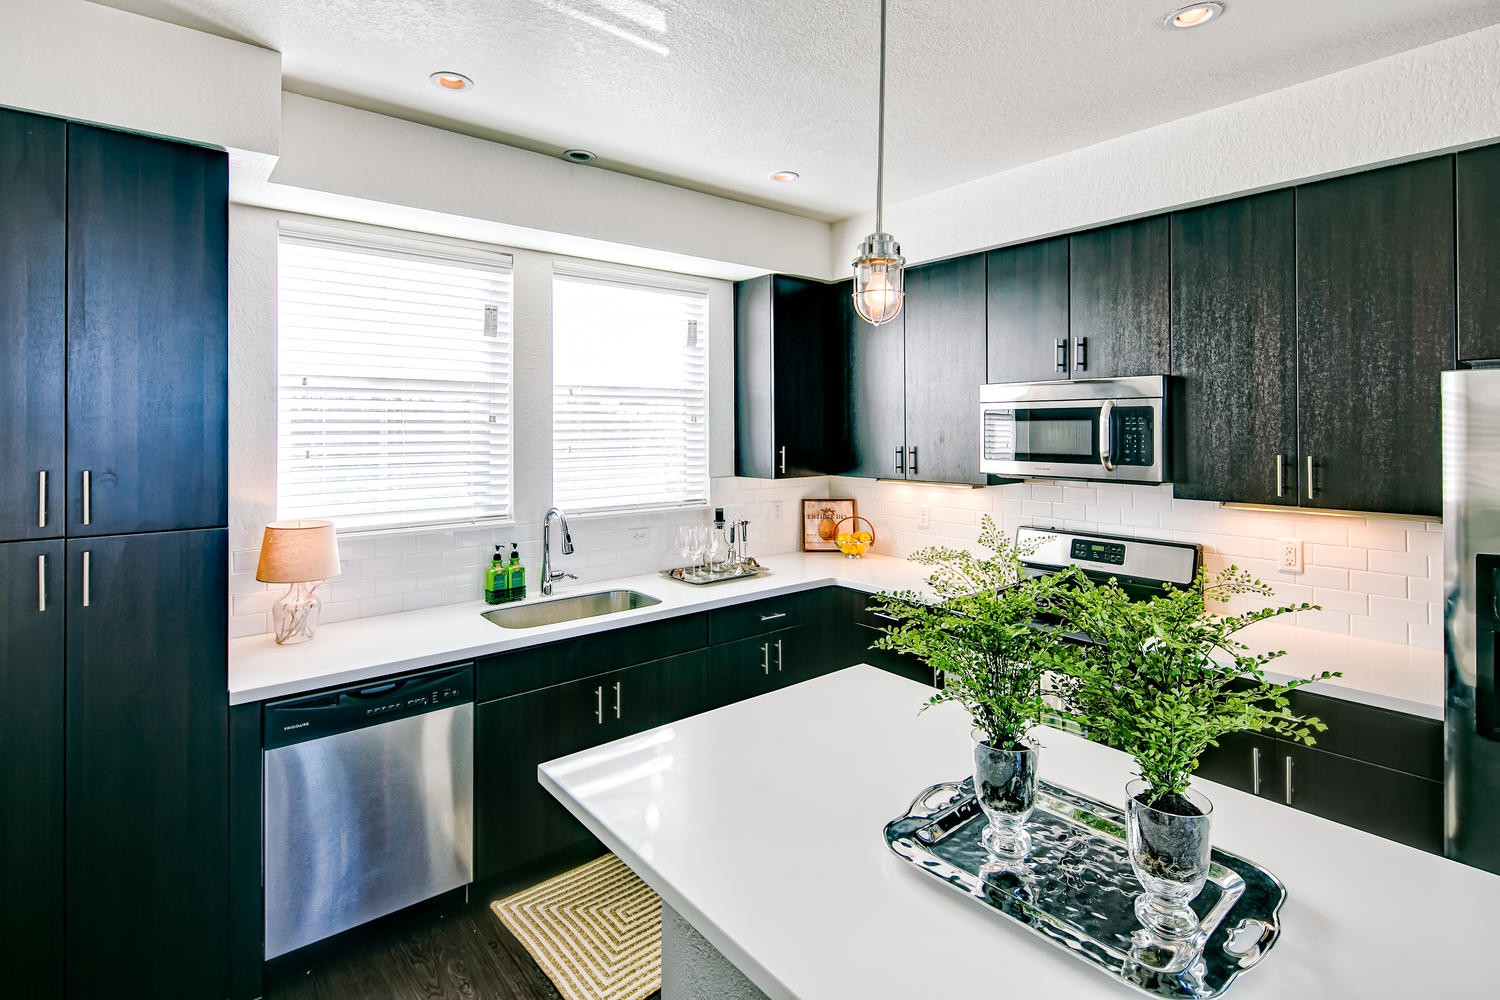 Apartments Near Westwood RedPeak Platt Park Townhomes for Westwood College Students in Denver, CO